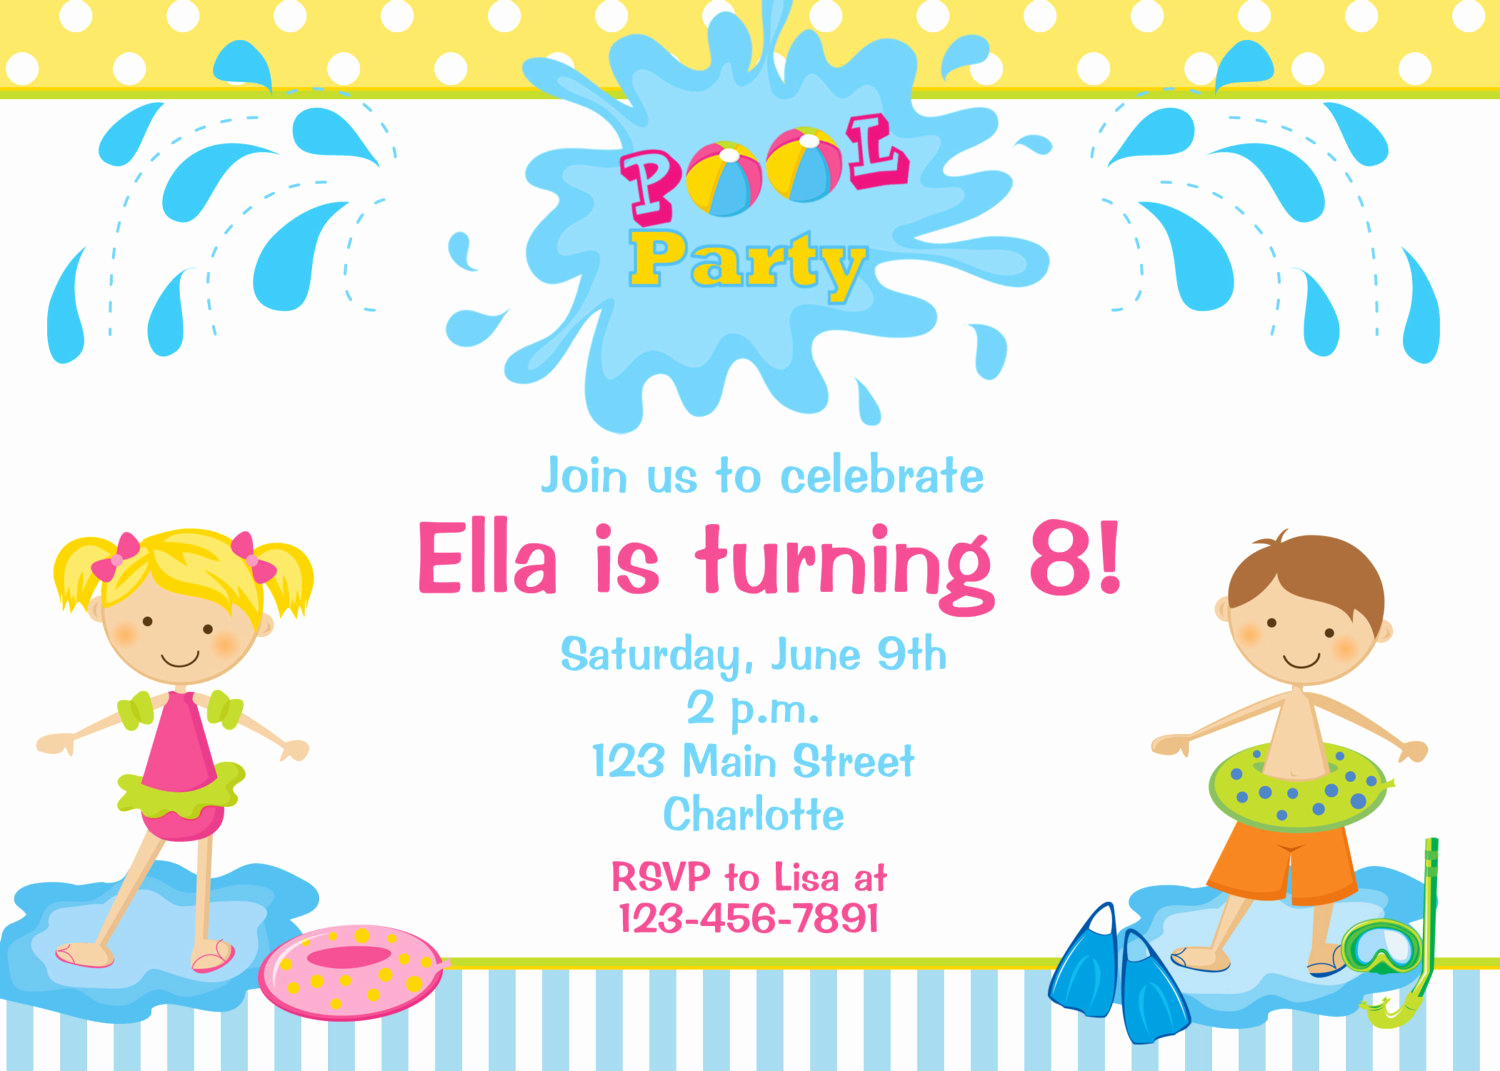 Bring Your Swimsuit Invitation Unique Free Printable Birthday Pool Party Invitations